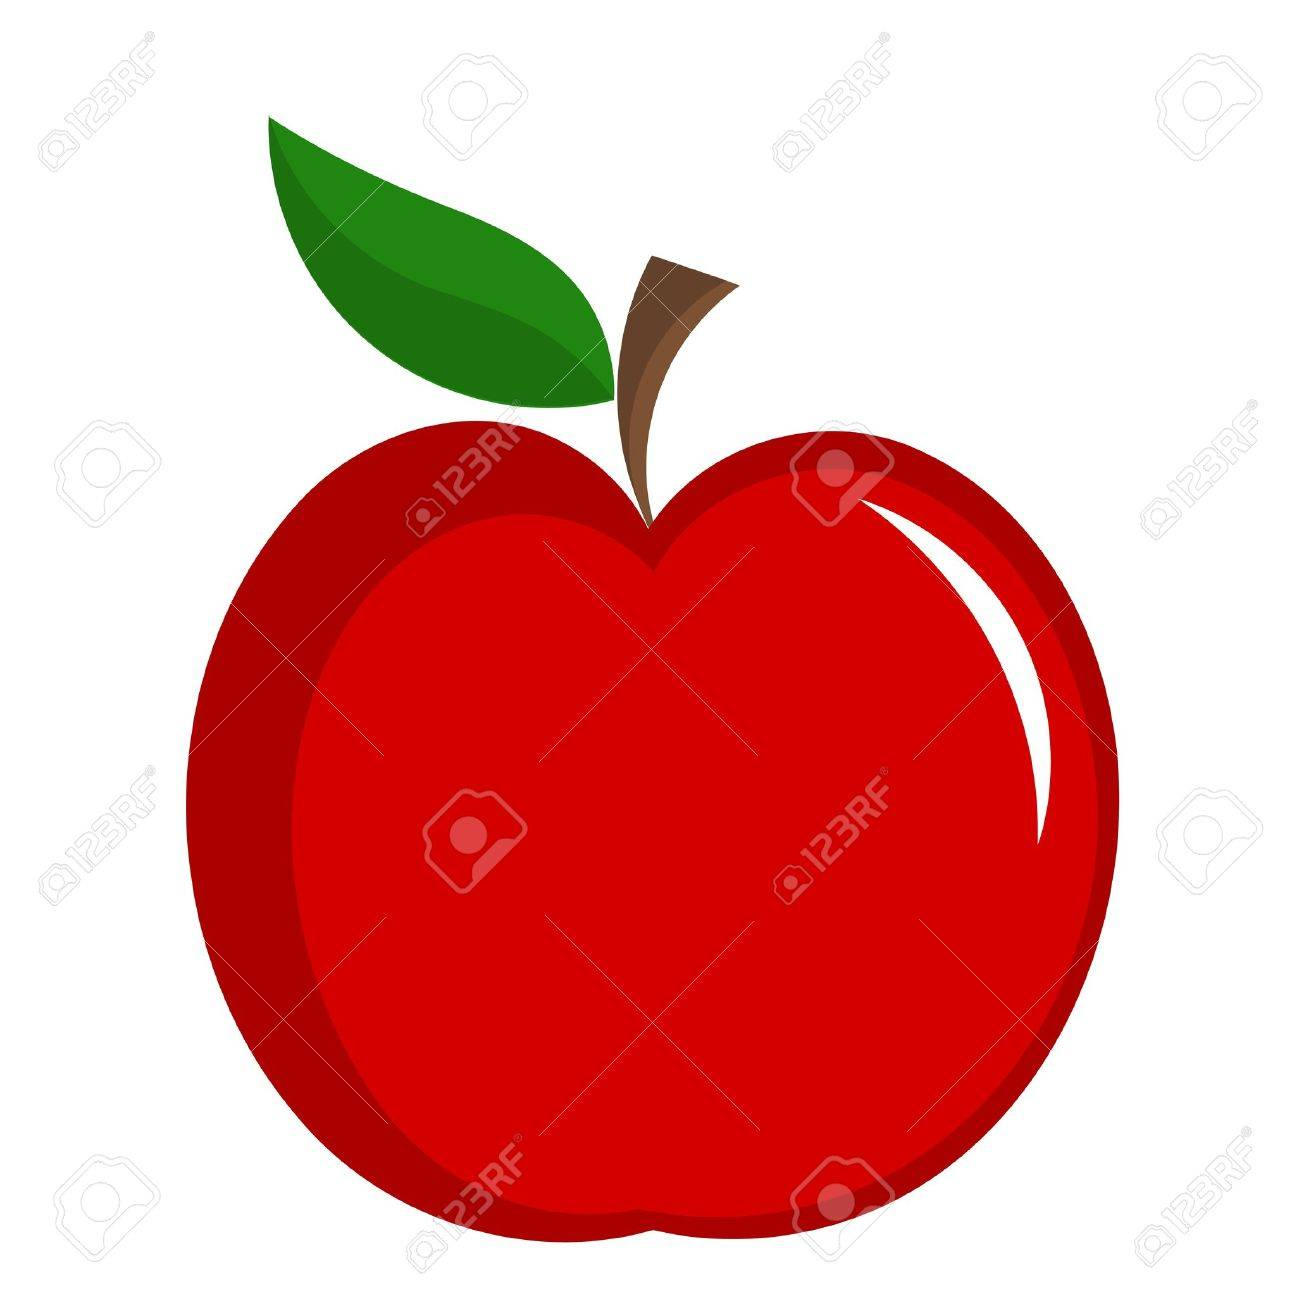 hight resolution of red apple with leaf illustration isolated stock vector 11588070